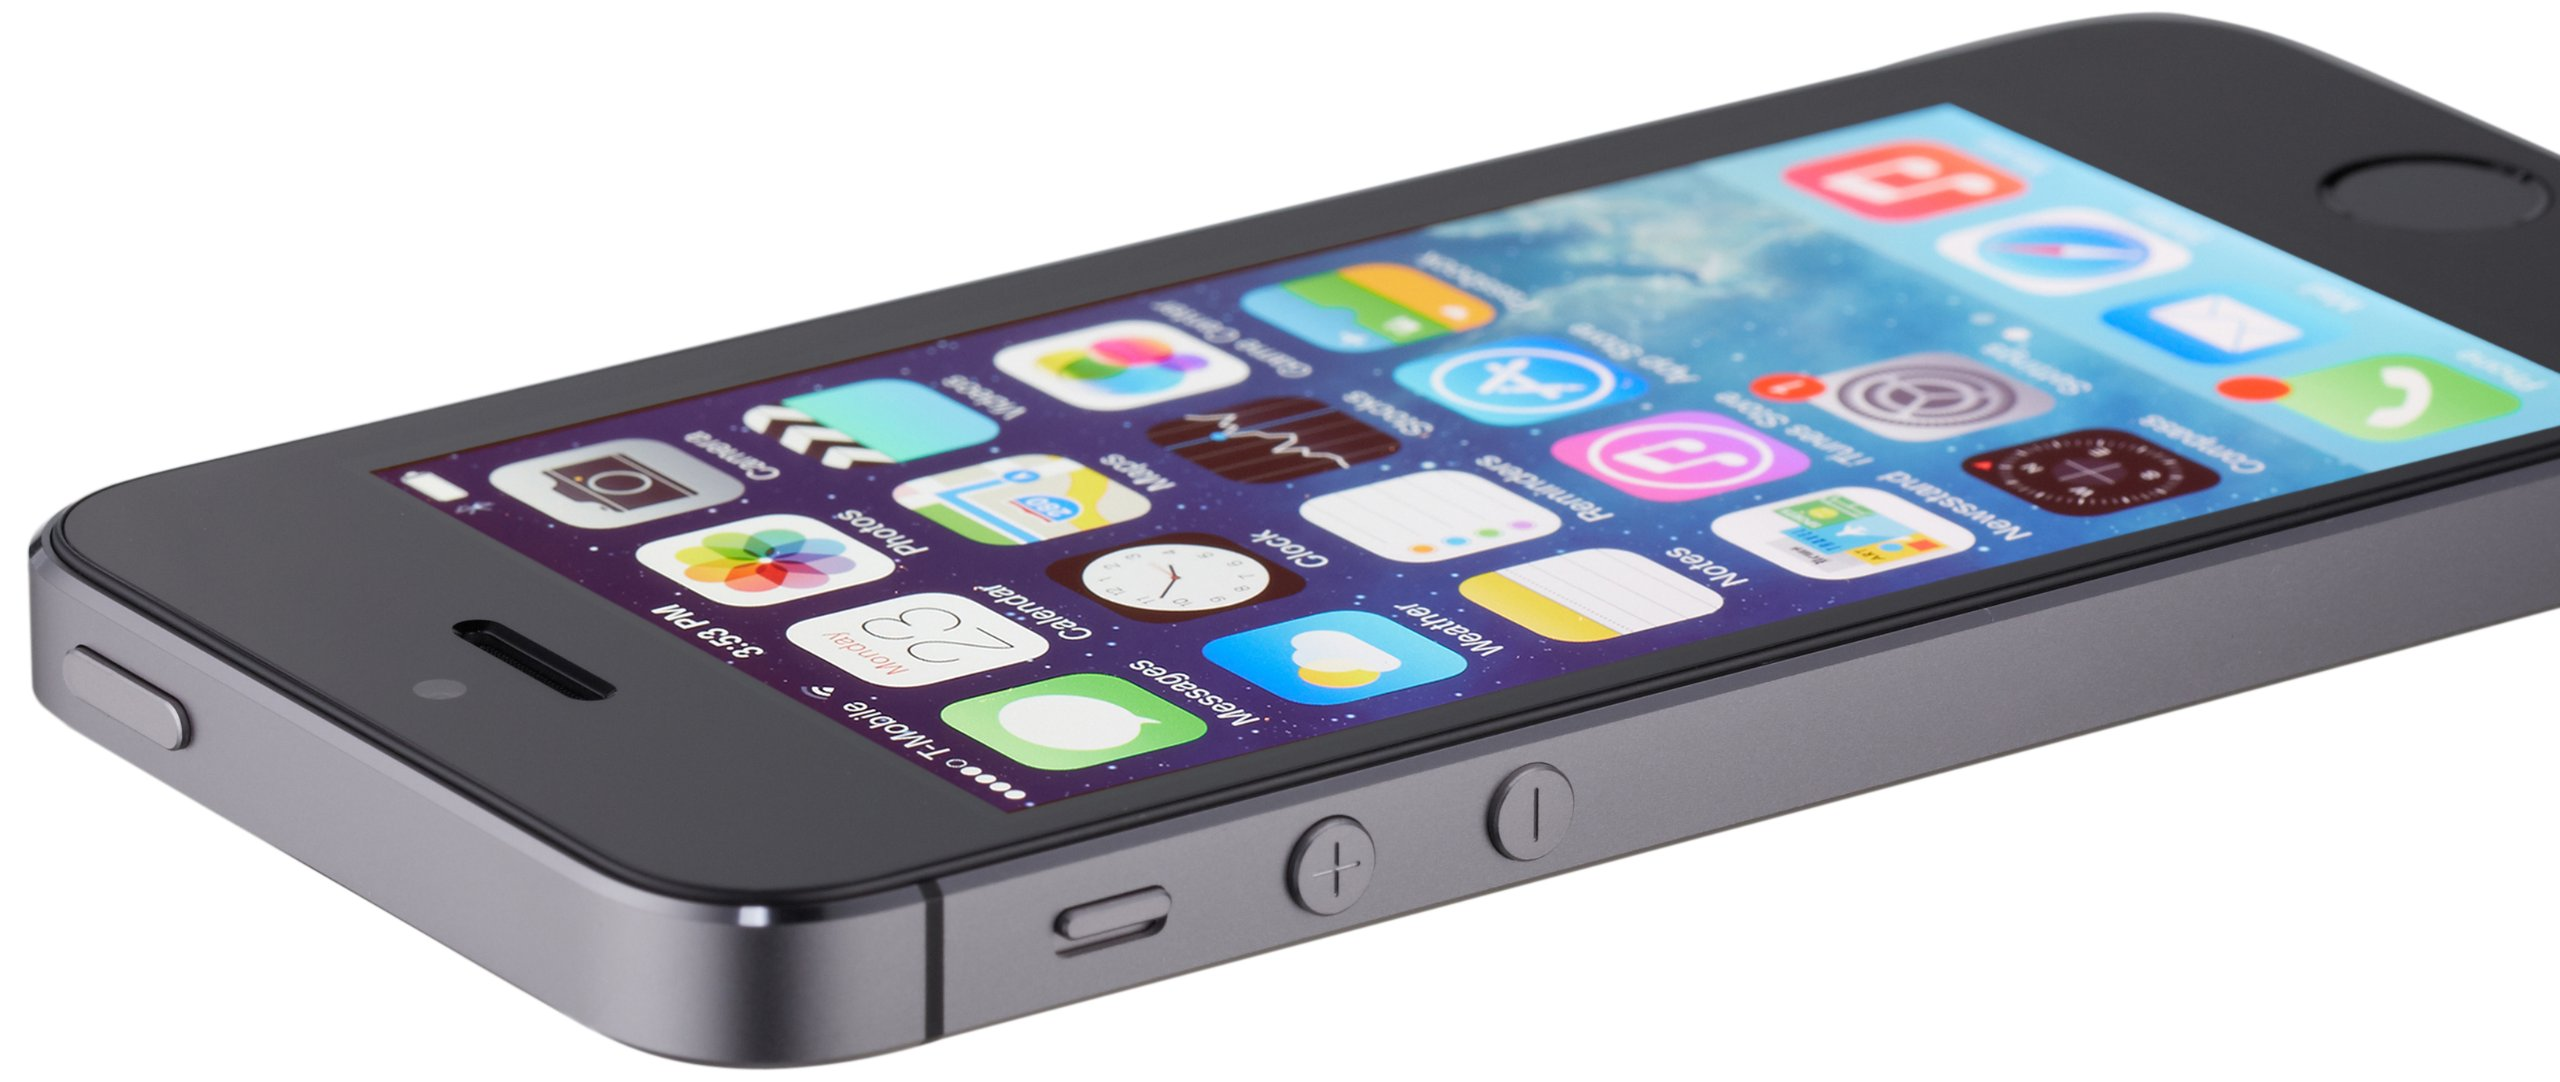 Apple Iphone 5s, 16GB - Unlocked (Space Gray) by Apple (Image #3)